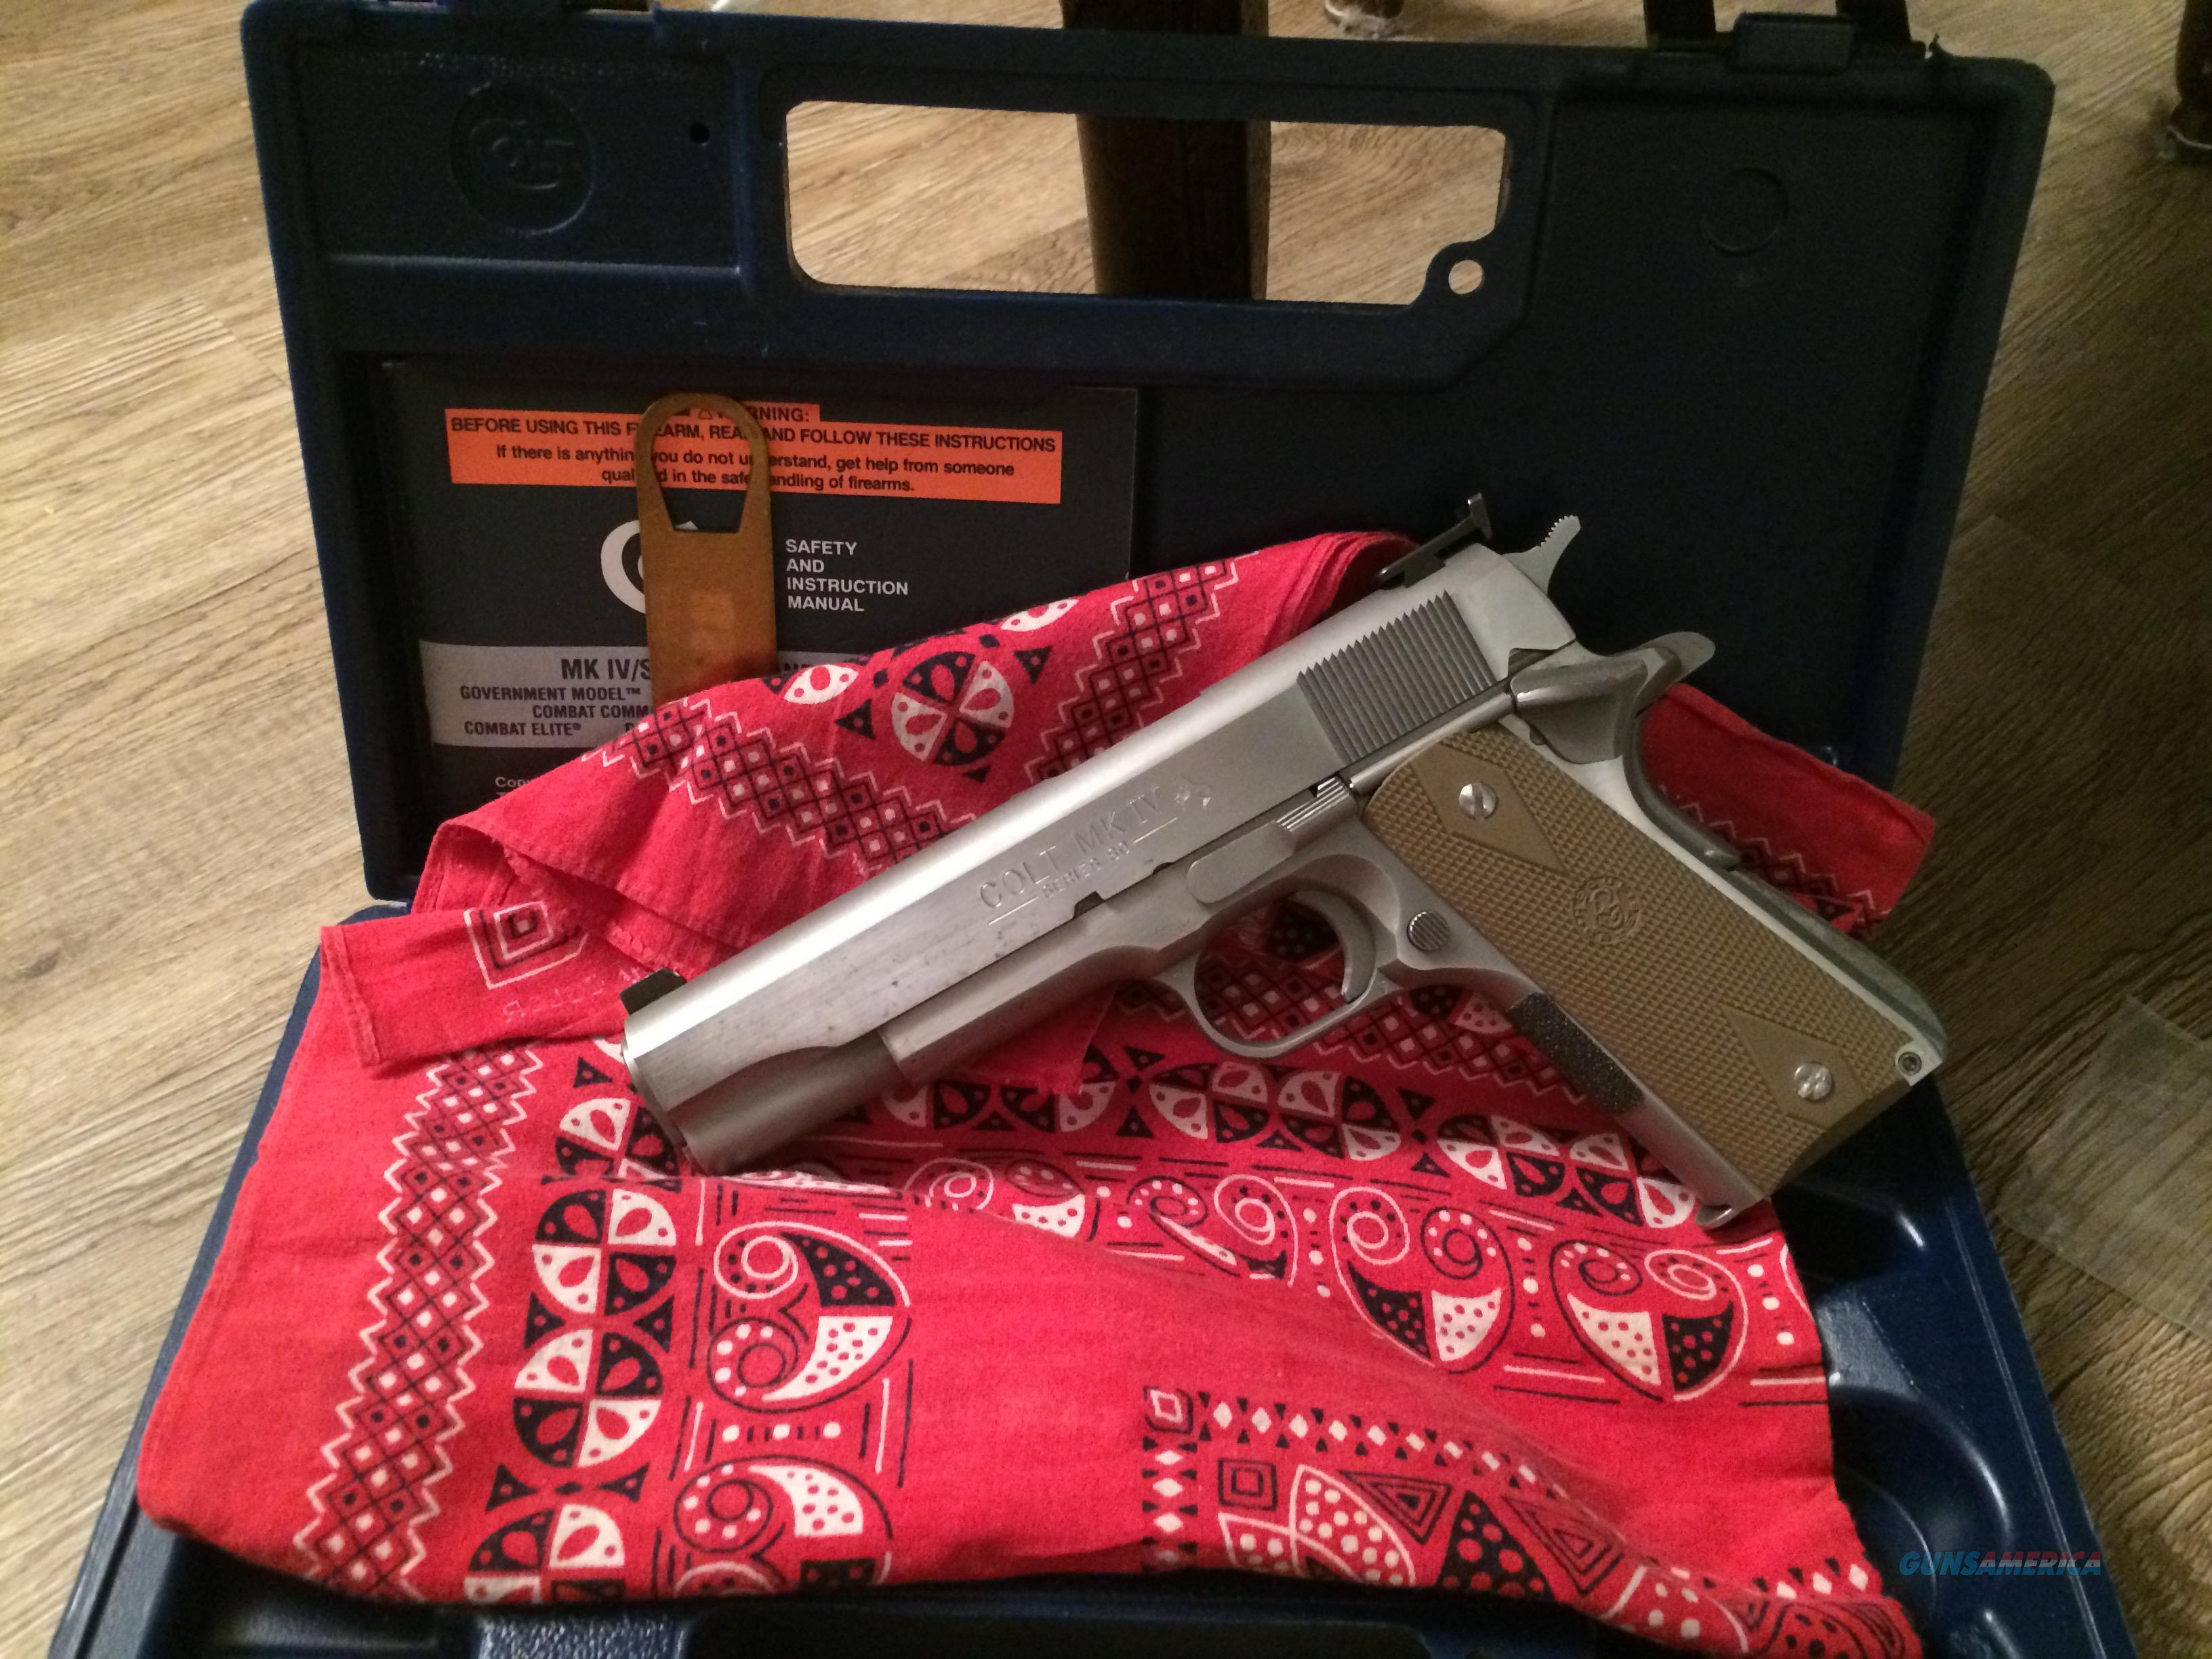 Stainless Series 80 Colt 1911 .45 ACP Manufactured 1983 with WILSON COMBAT barrel & EGW bushing installed, Original Colt Black Wood Grips w/Medallions!  Guns > Pistols > Colt Automatic Pistols (1911 & Var)